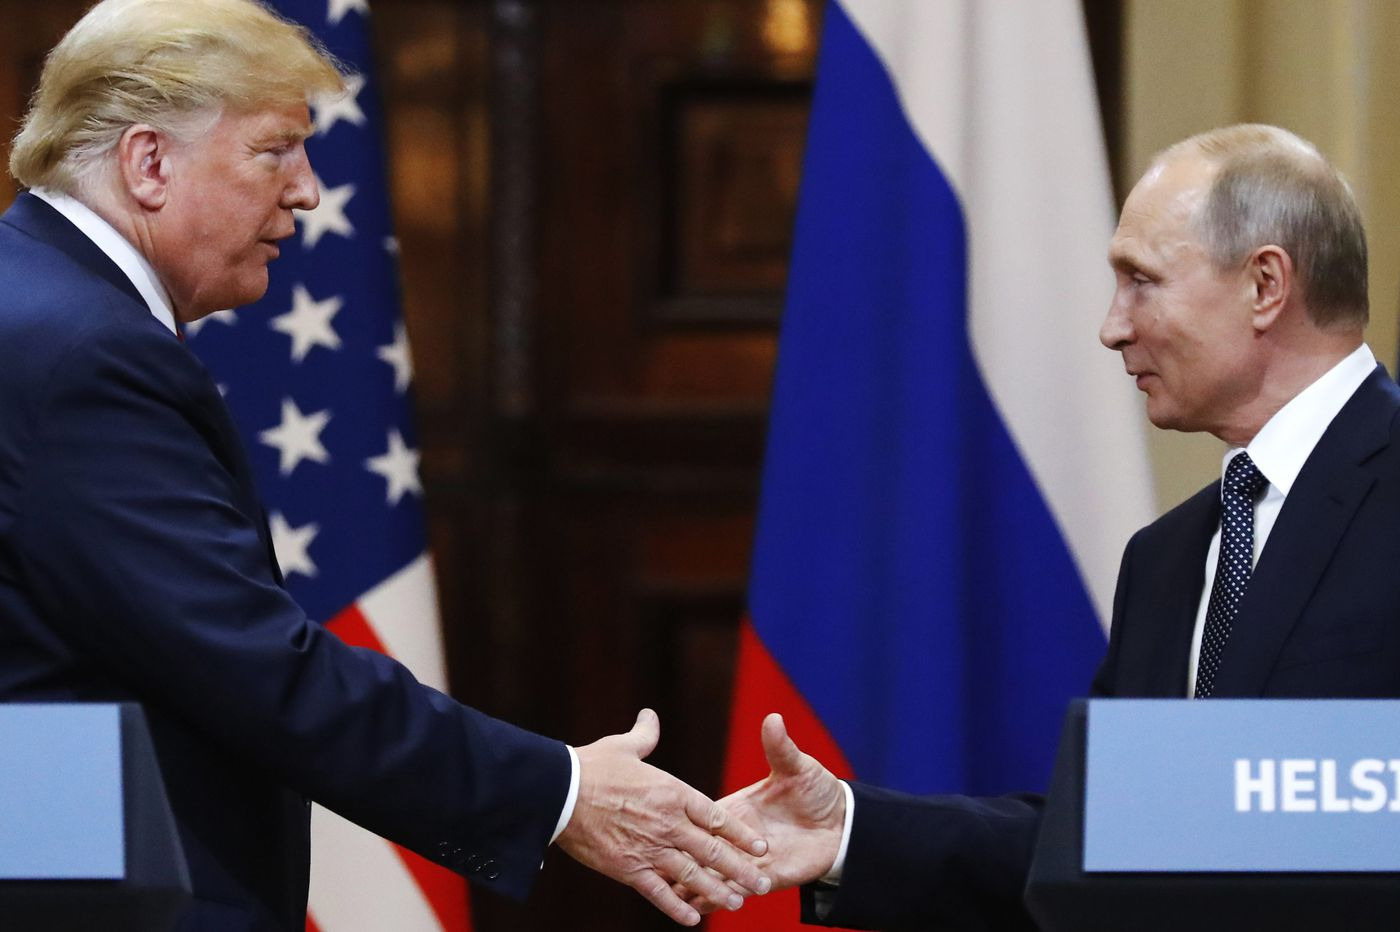 Trump's homage to Putin at Helsinki proves him unfit to make foreign policy | Trudy Rubin